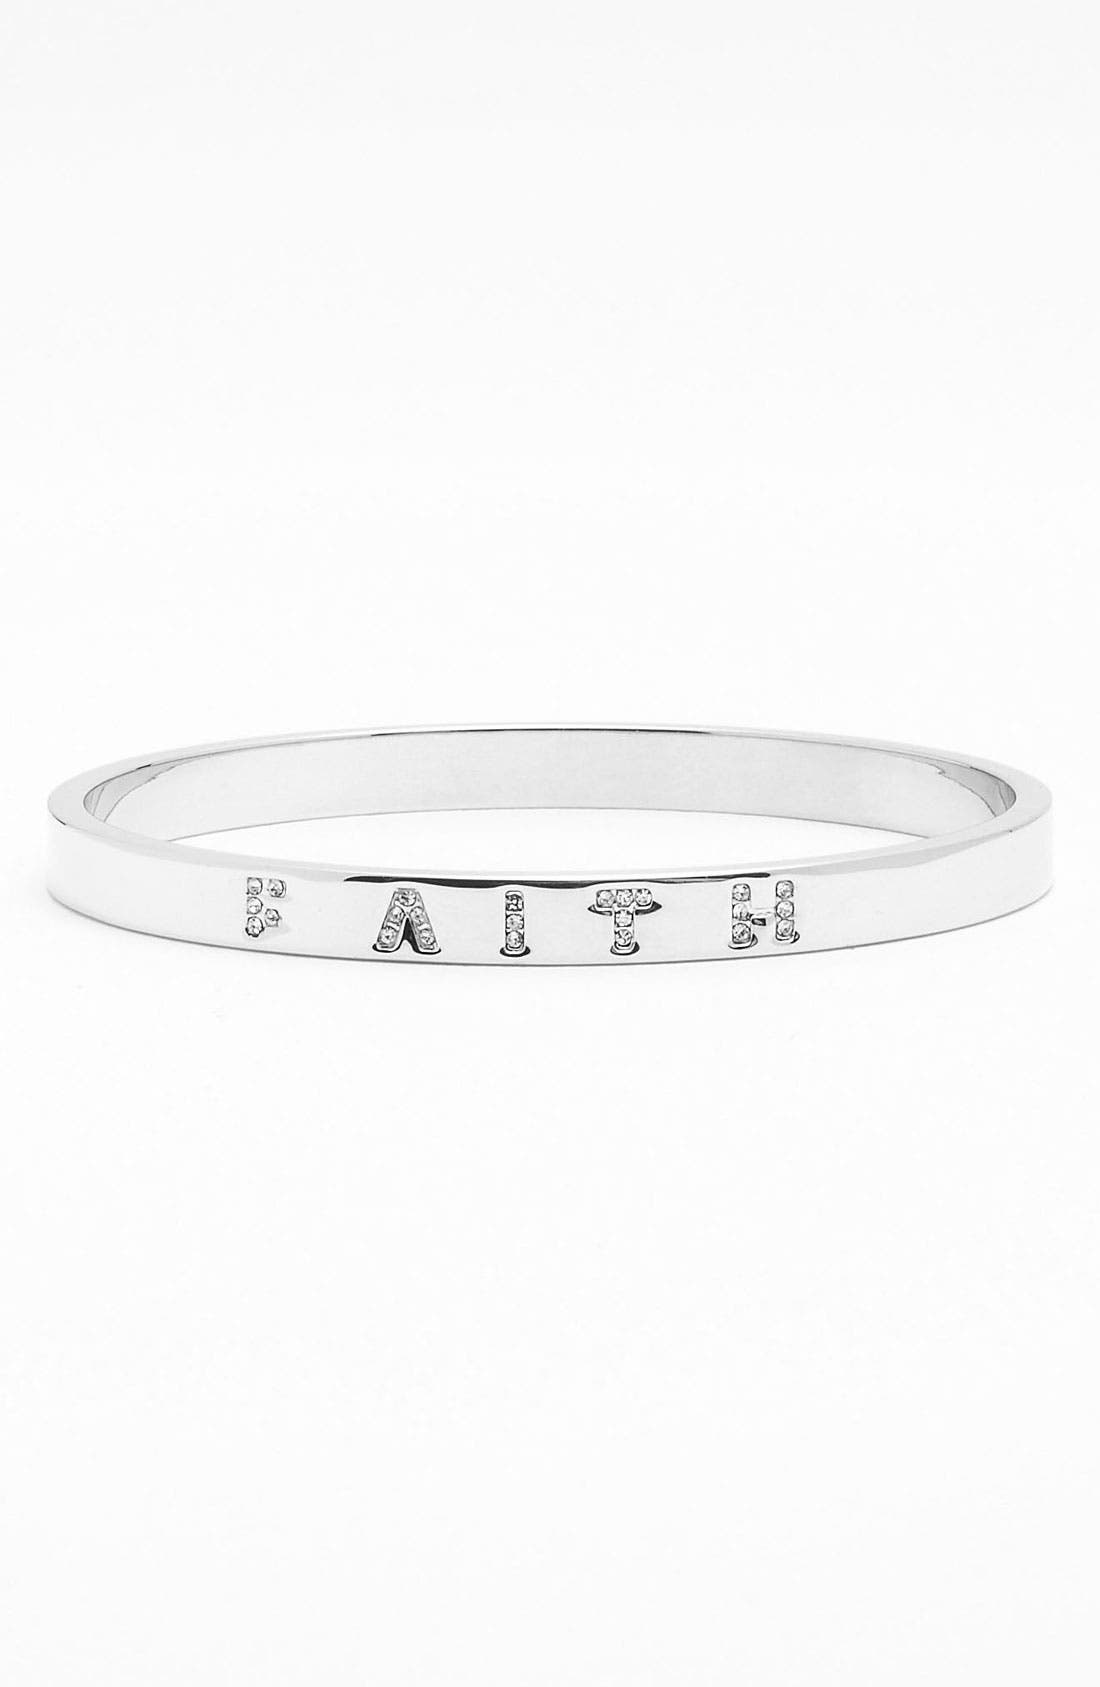 Alternate Image 1 Selected - Ariella Collection 'Messages - Faith' Pavé Bangle